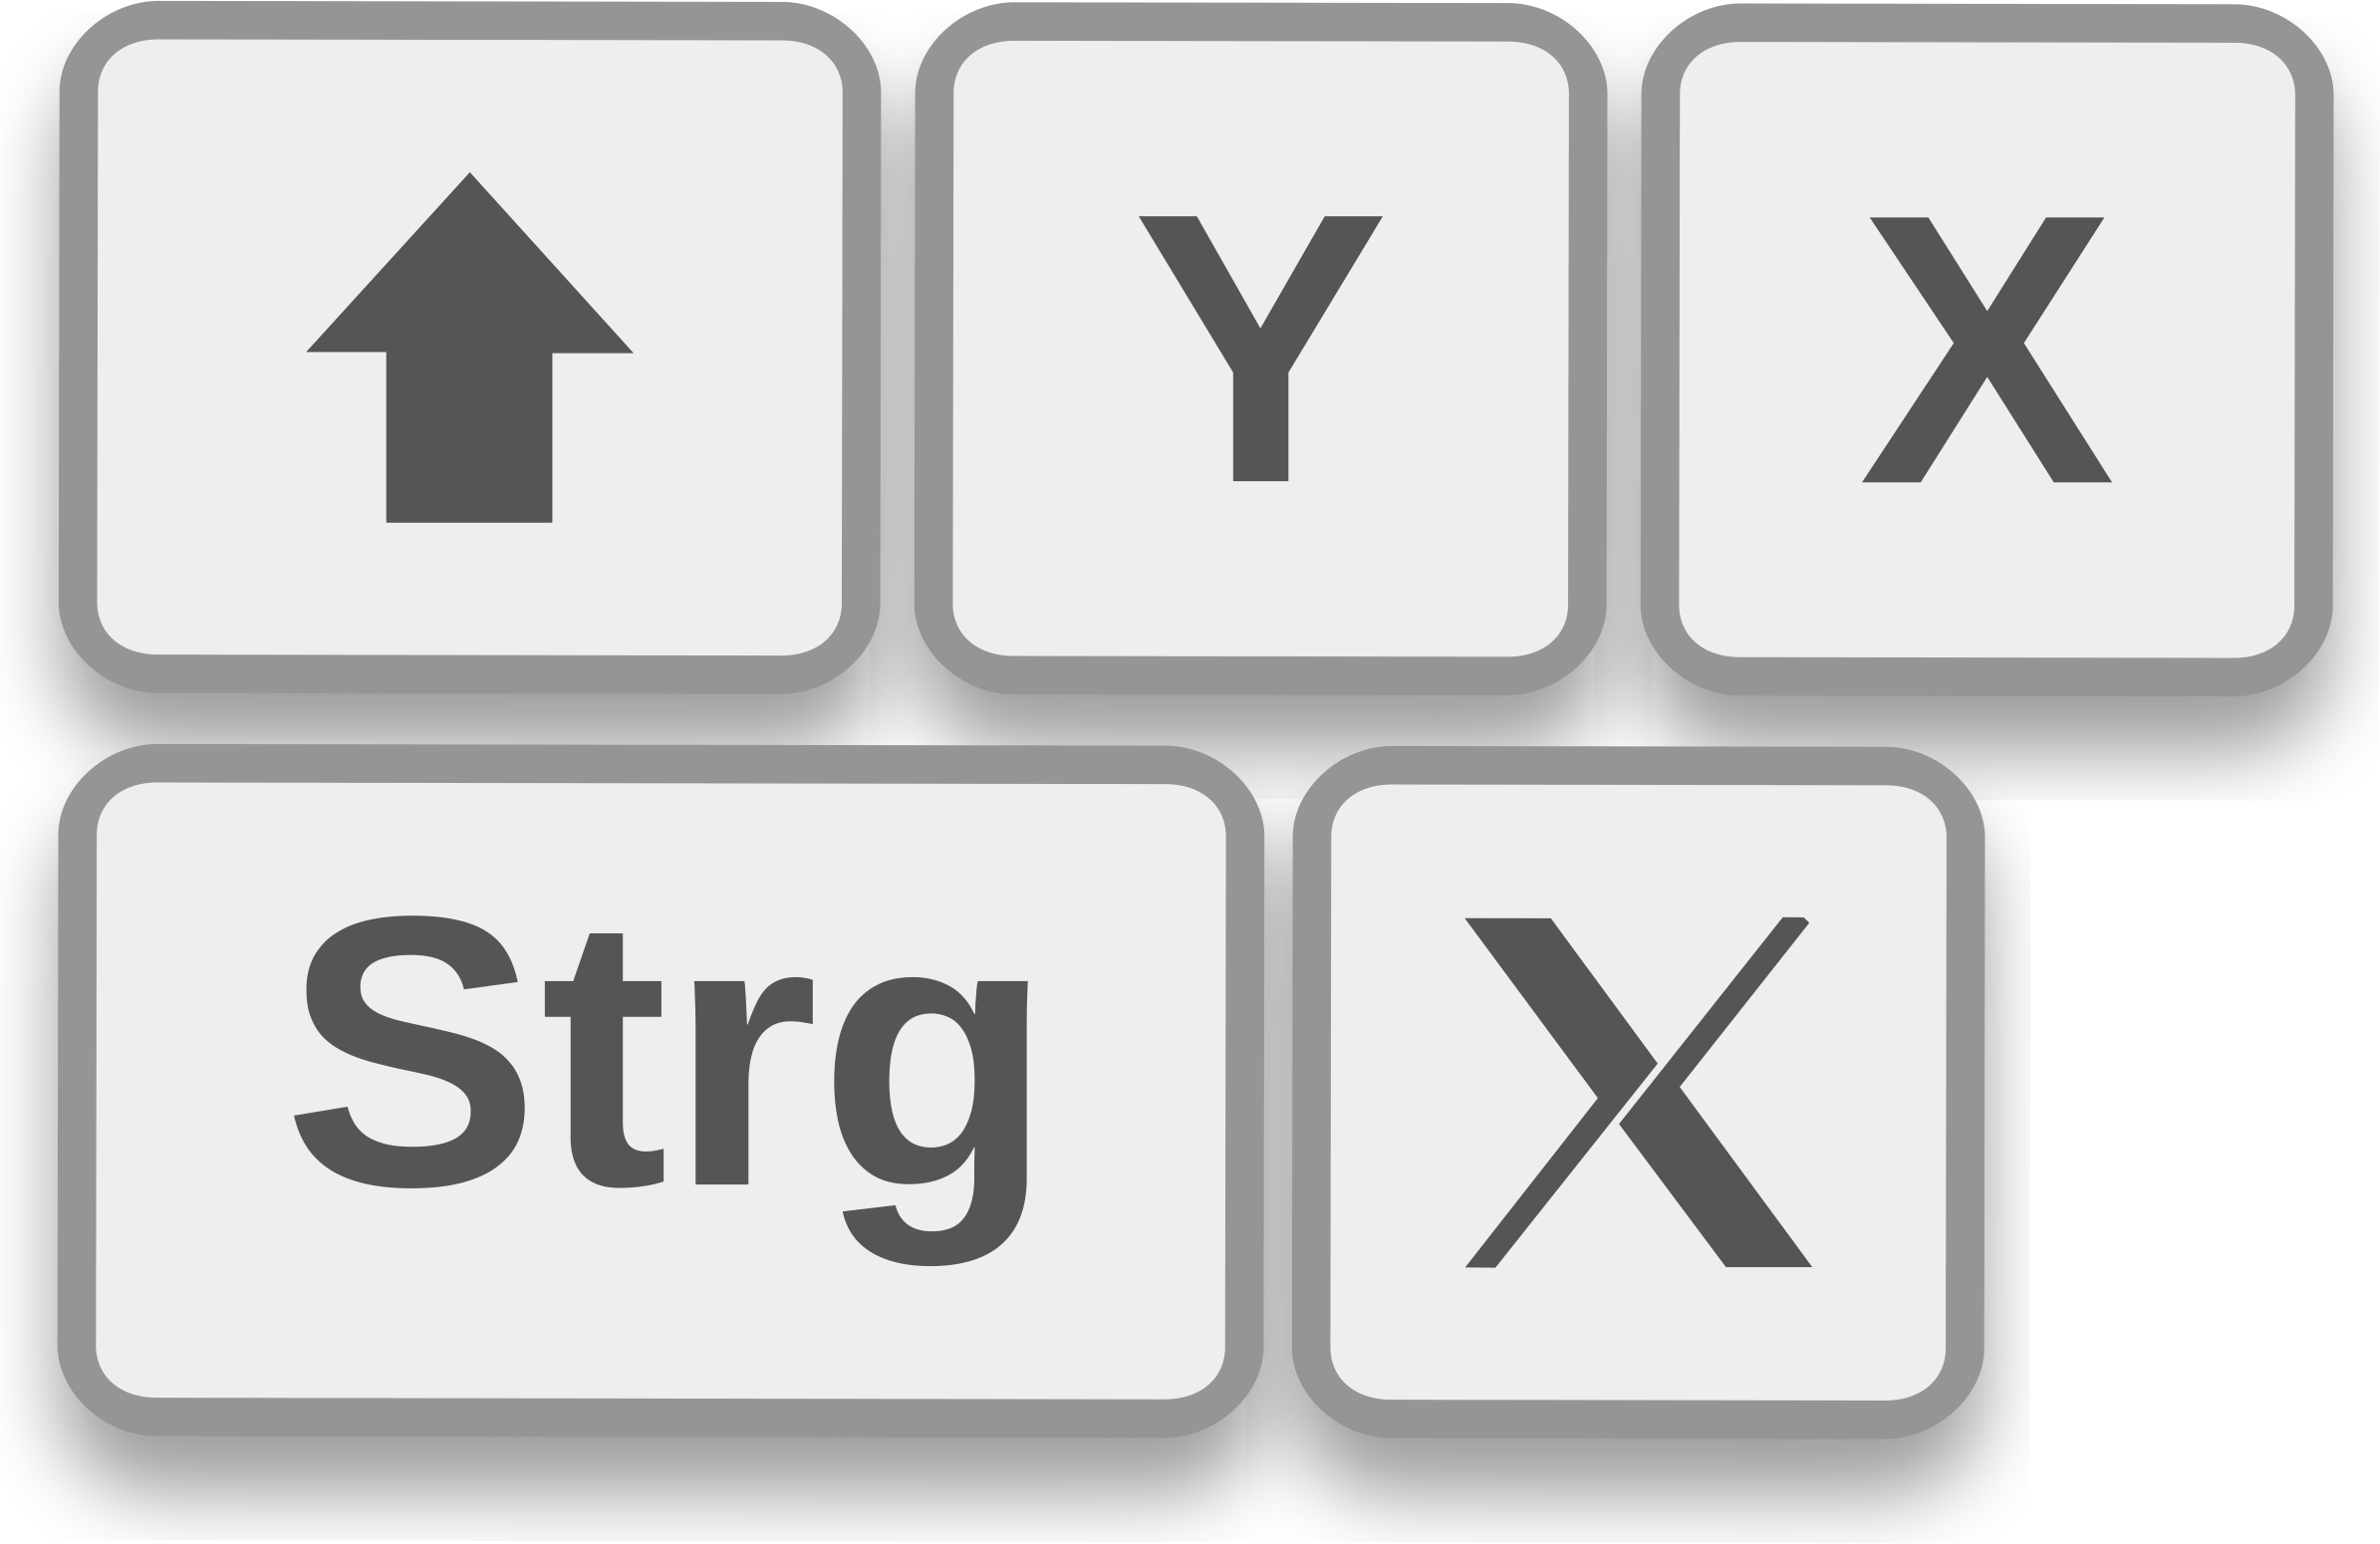 This Free Icons Png Design Of Keyboard Shortcuts.